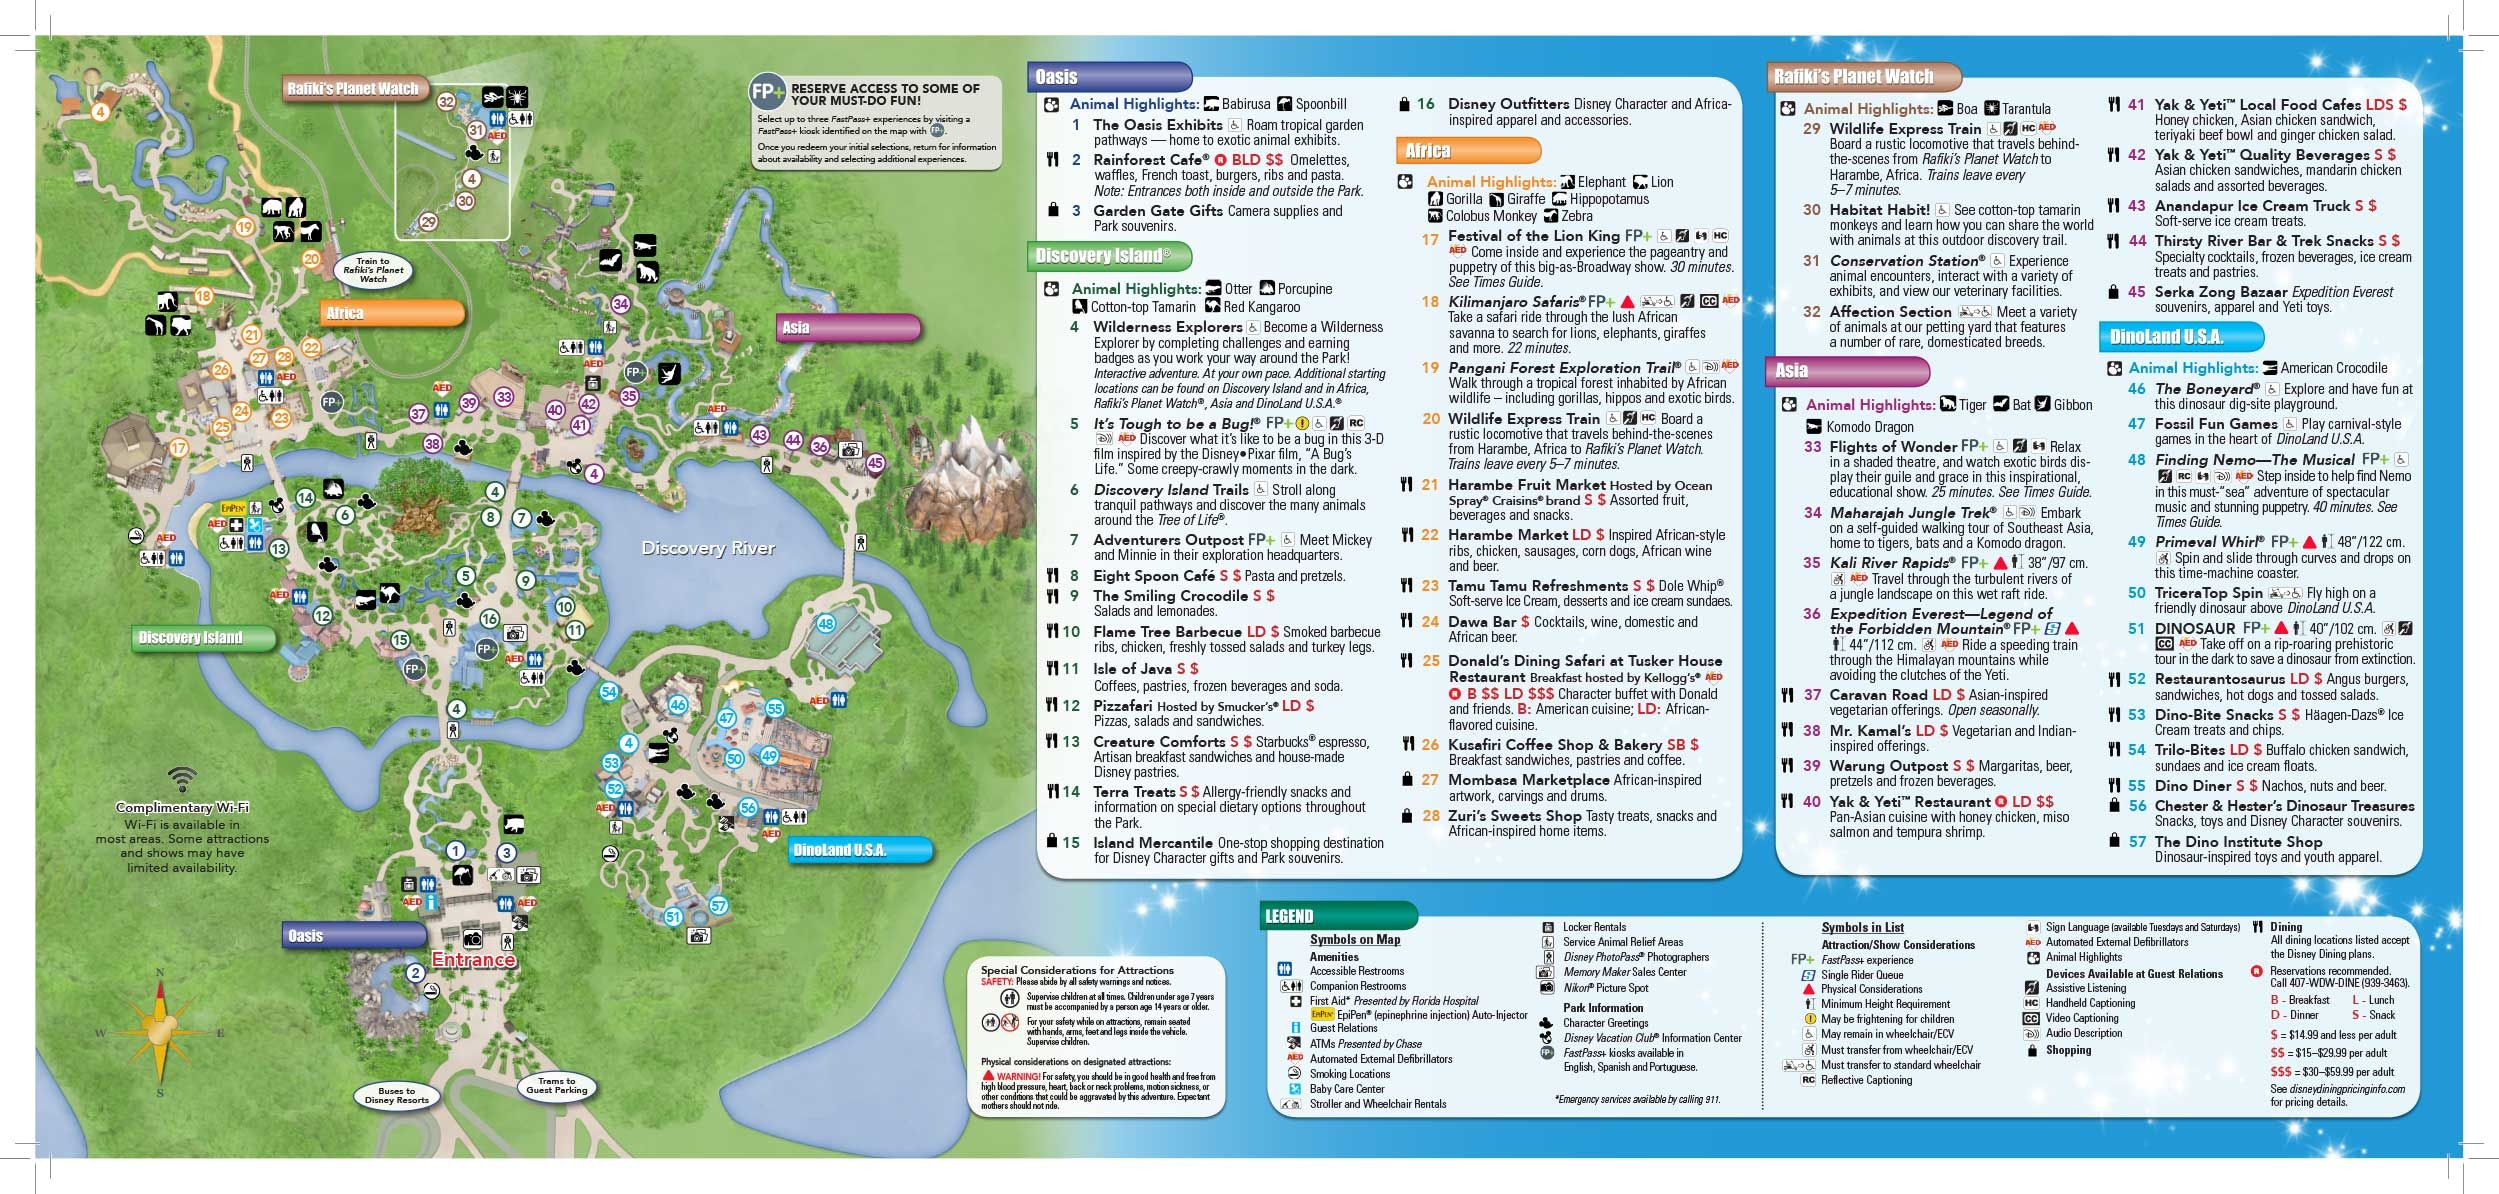 Disney's Animal Kingdom map Theme Park map | Disney | Disney ... on map of last night, map of restrepo, map of first landing, map of sea world san antonio, map of butler chain of lakes, map of arthur, map of universal studios orlando, map of nickelodeon suites resort, map of tammy, map of serenity, map of downtown disney, map of wizarding world of harry potter, map of espn wide world of sports complex, map of epcot, map of the kentucky derby, map of disney world, map of blizzard beach, map of disney village, map of typhoon lagoon, map of hollywood studios,